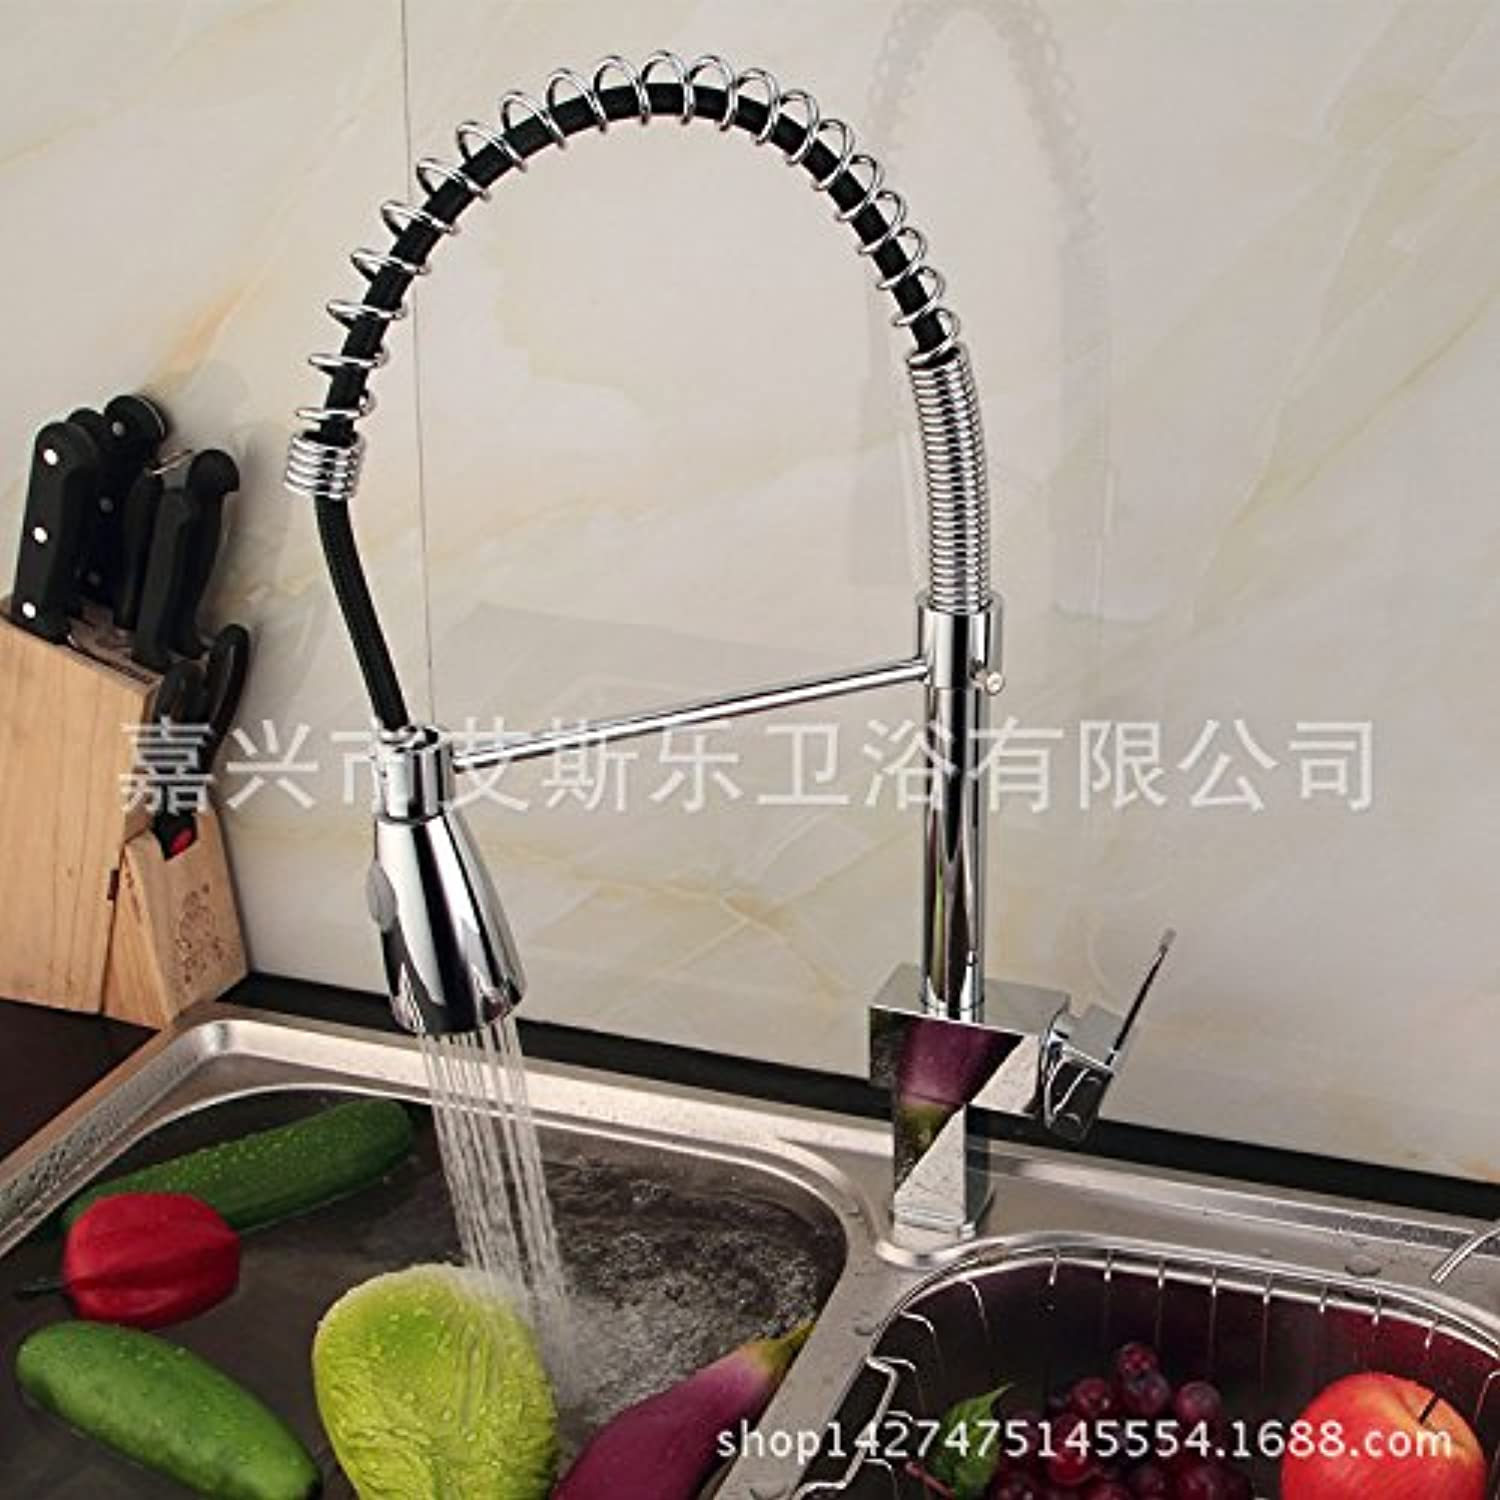 Commercial Single Lever Pull Down Kitchen Sink Faucet Brass Constructed Polished Basin Faucet Foreign Trade Kitchen Spring Faucet Pull-Type Faucet Dish Basin Basin Agent to Join A Generation